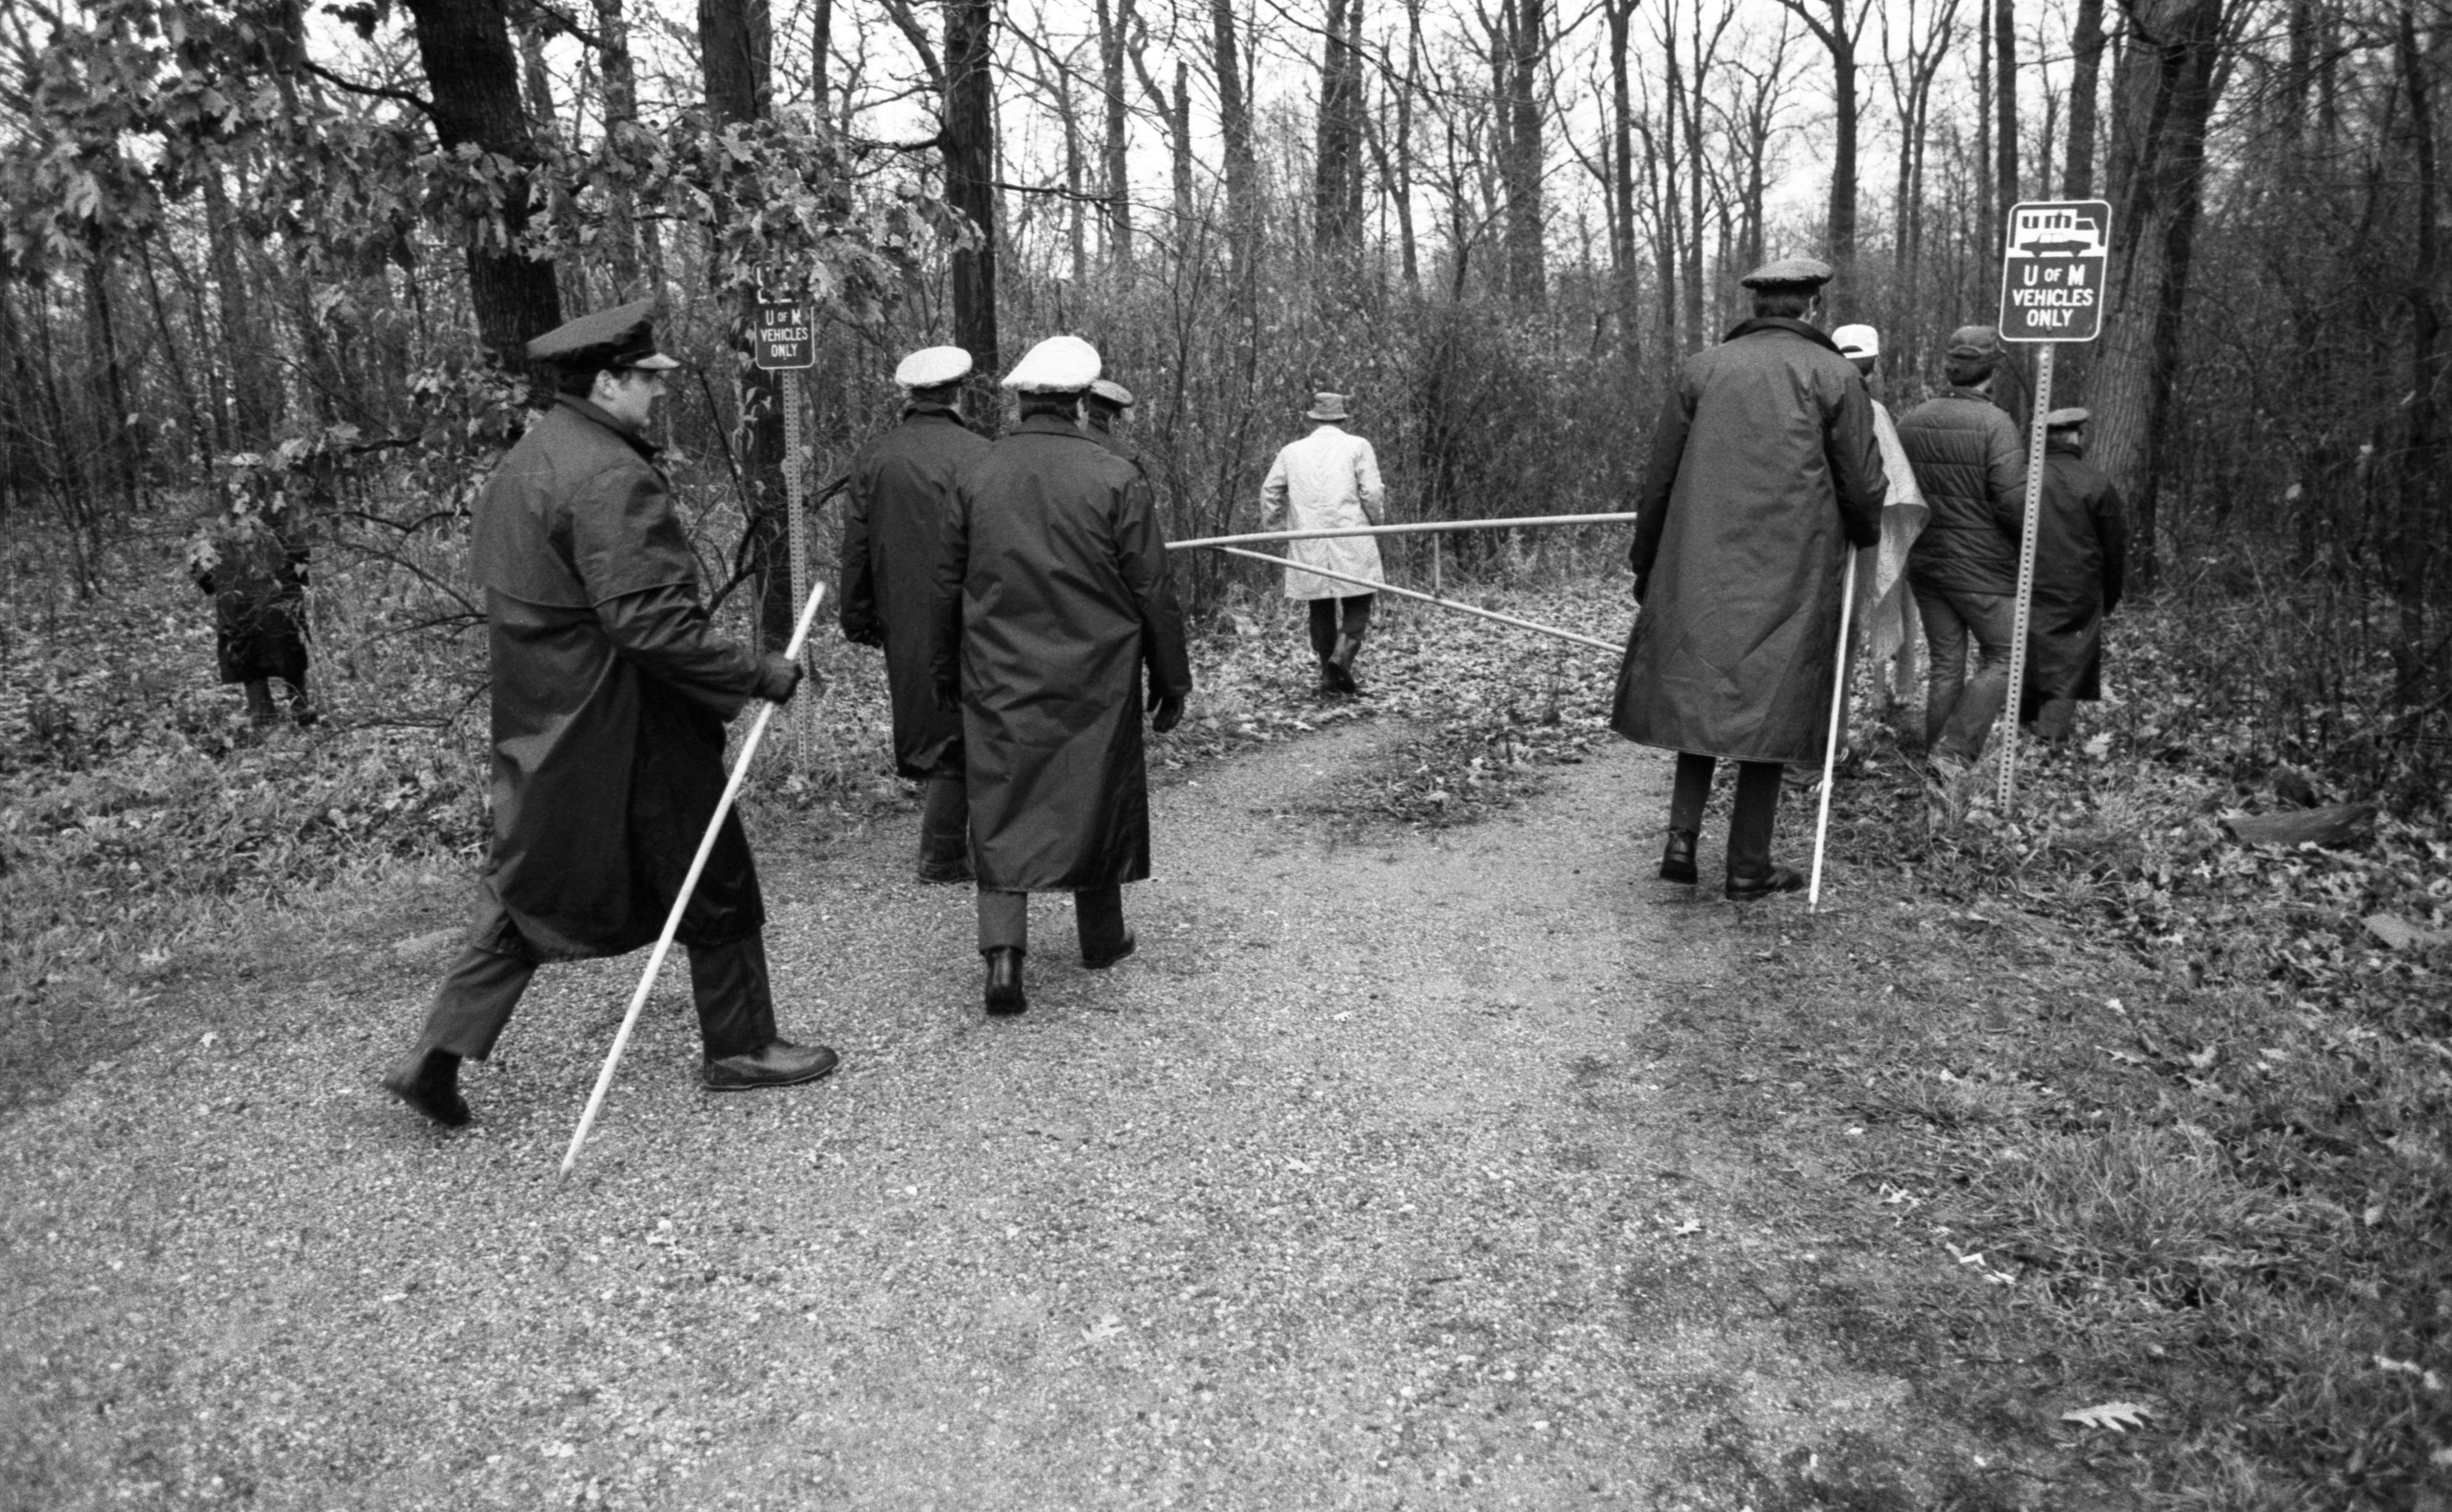 Ann Arbor Police Search University of Michigan Property For Purse in Nancy Faber Murder Investigation, November 1983 image